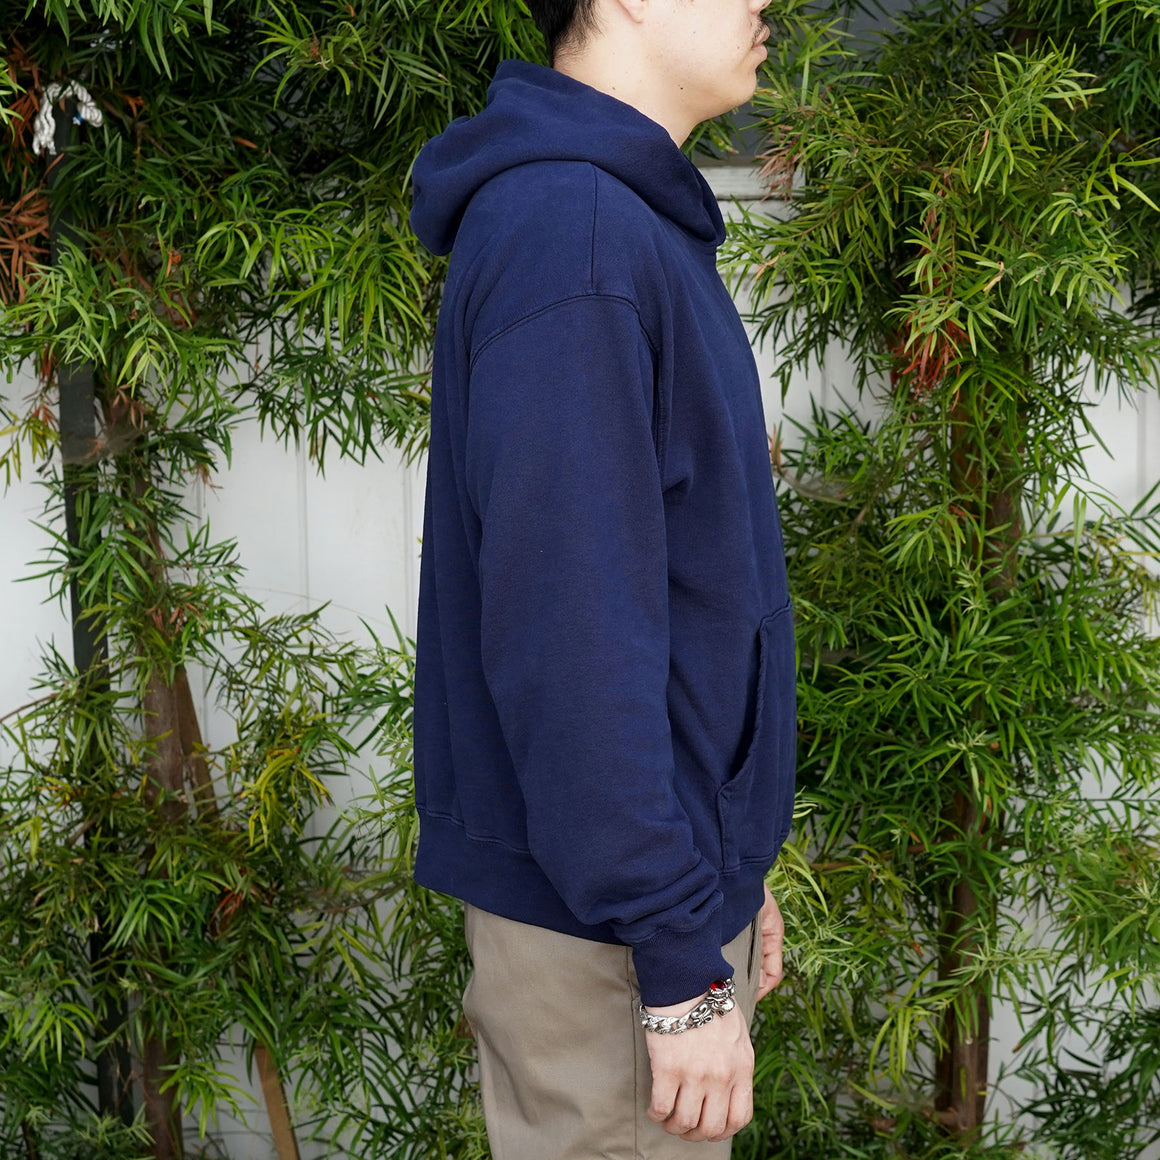 Fairfax Hooded Sweatshirt in Indigo